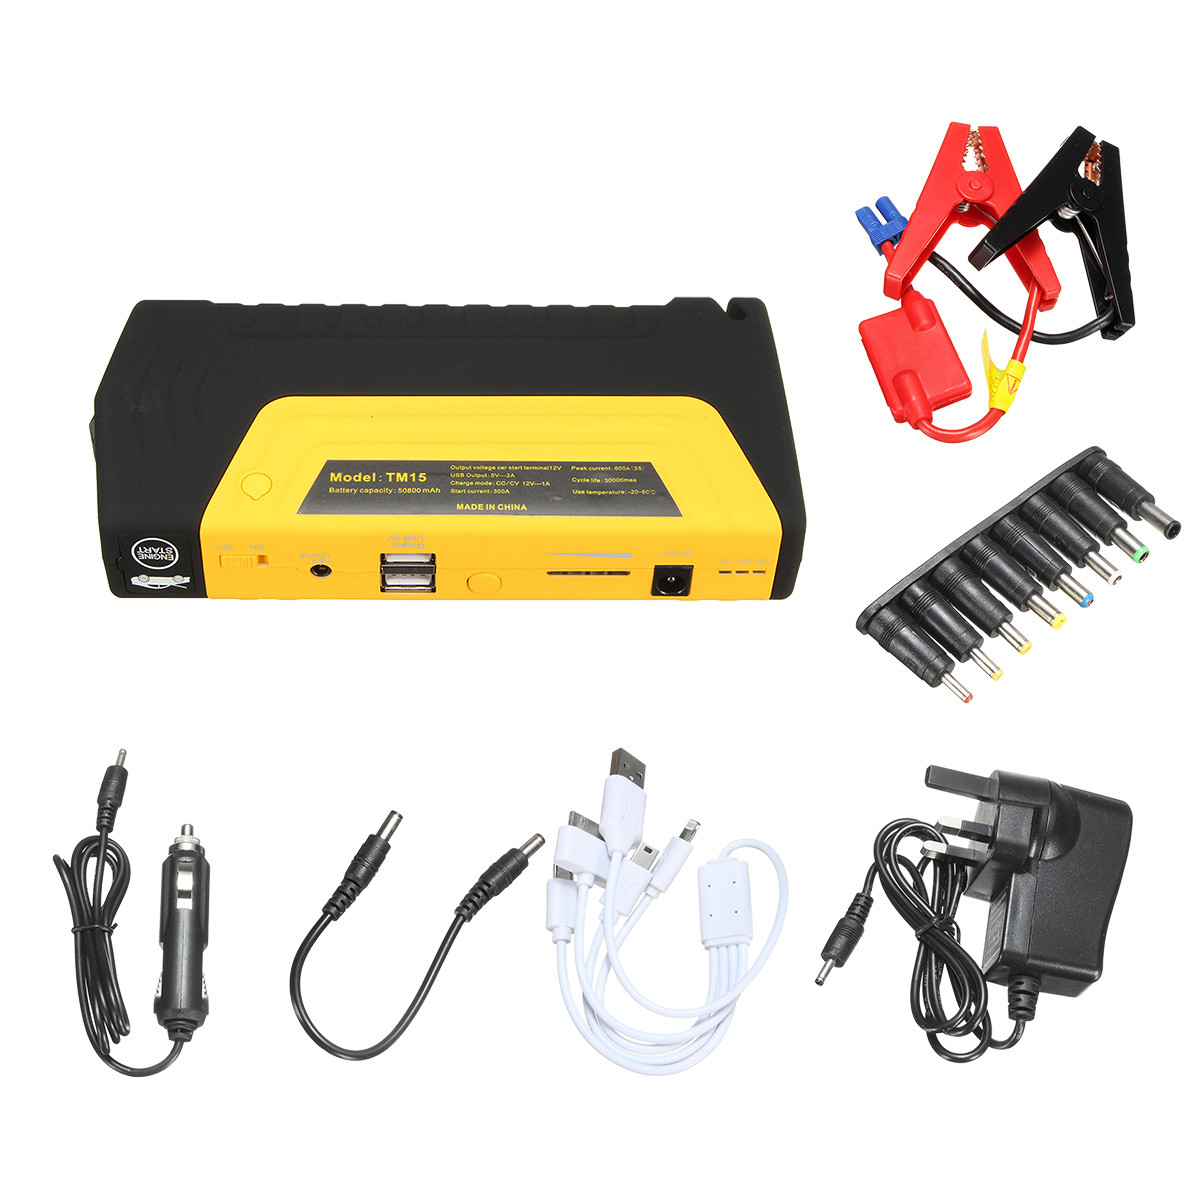 50800mAh LED Dual USB Car Jump Starter Booster Portable Power Bank Backup Charger Power Supply